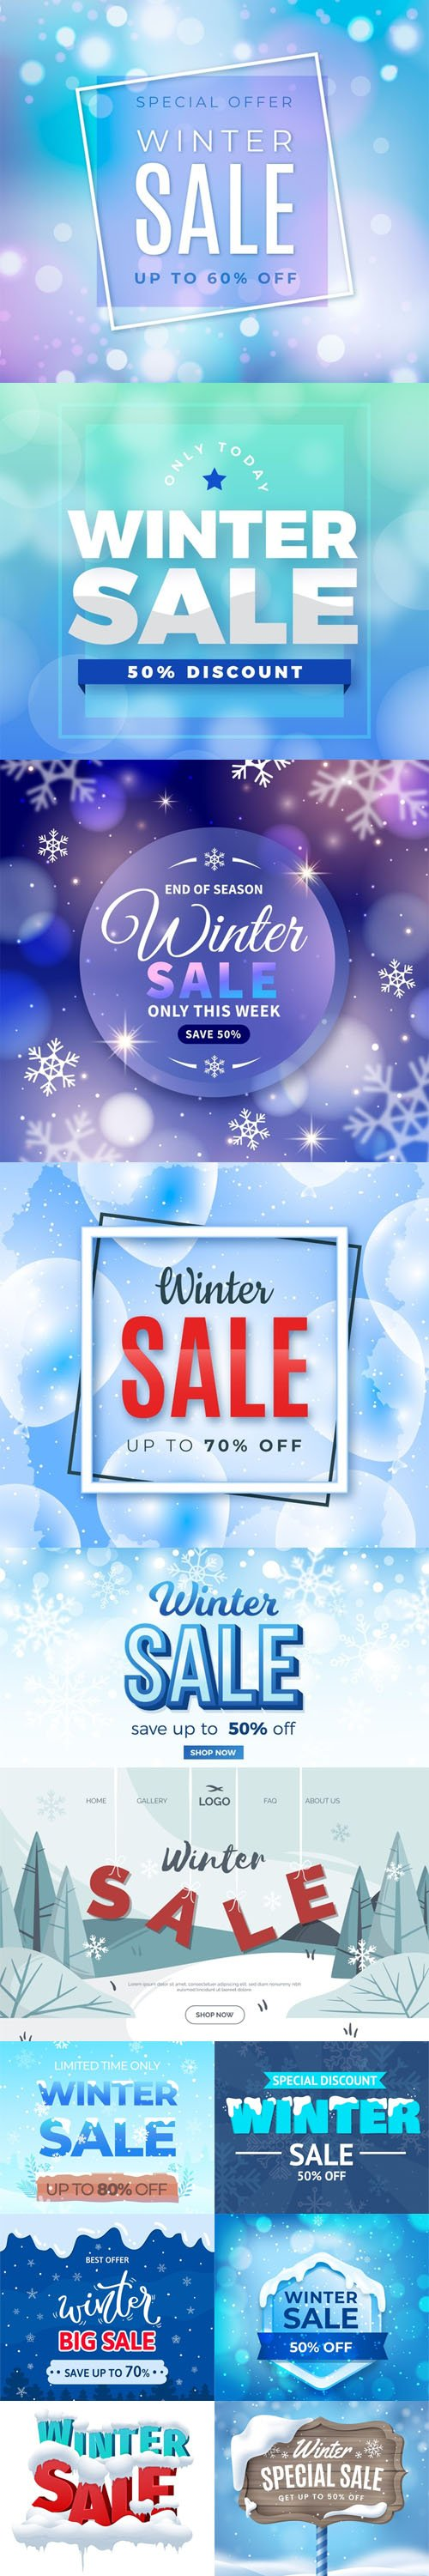 12 Winter Sales Backgrounds Collection in Vector